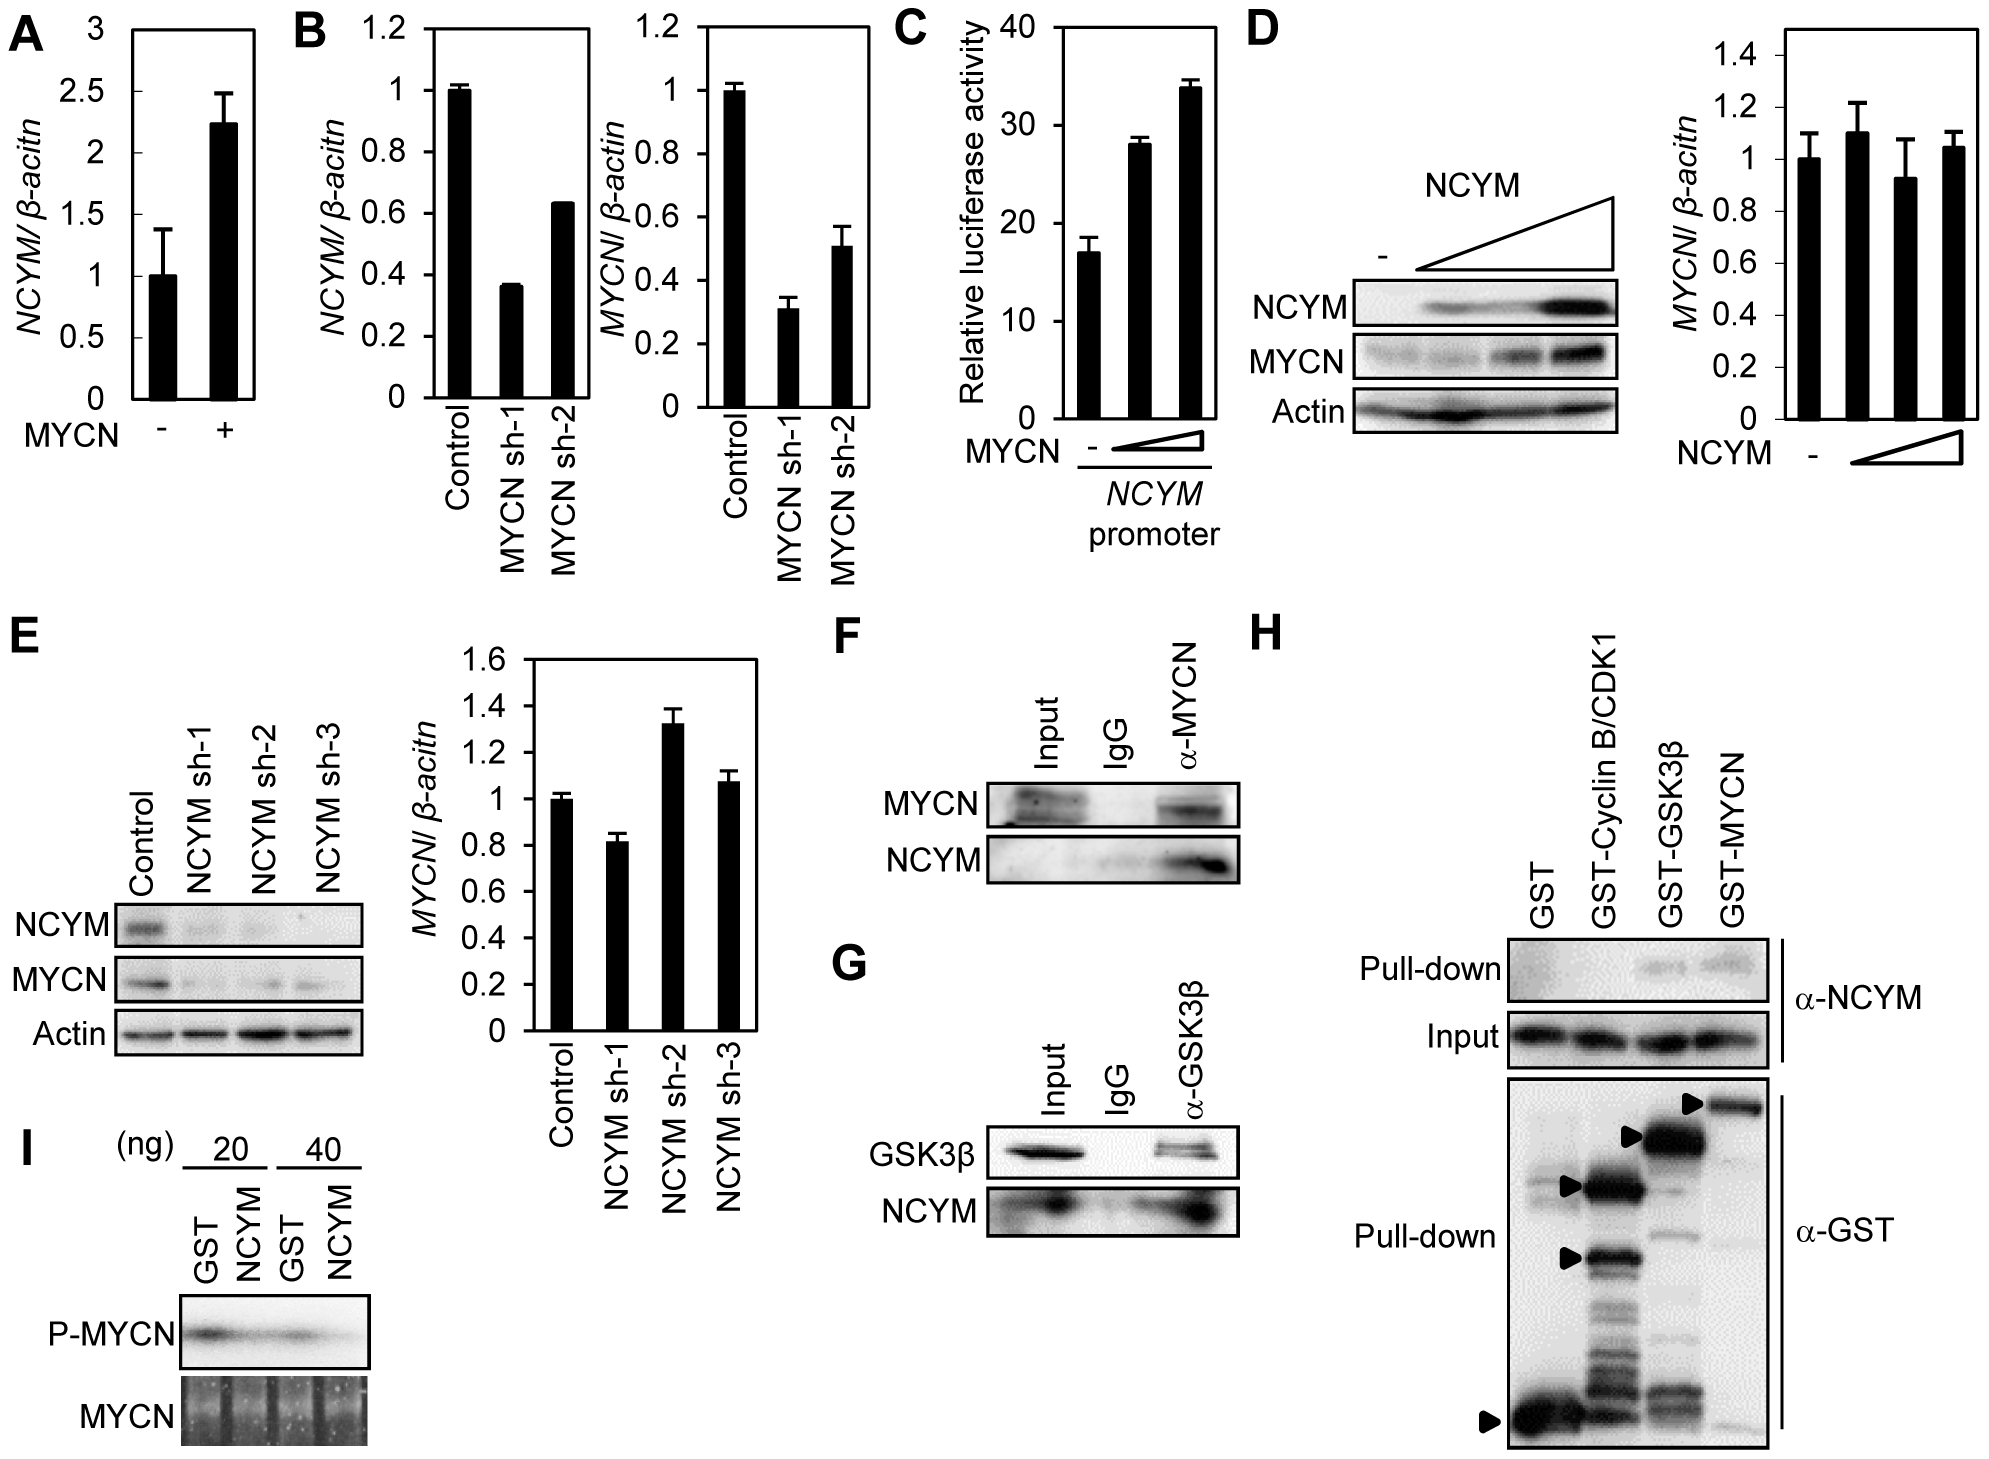 Functional interaction between NCYM and MYCN.